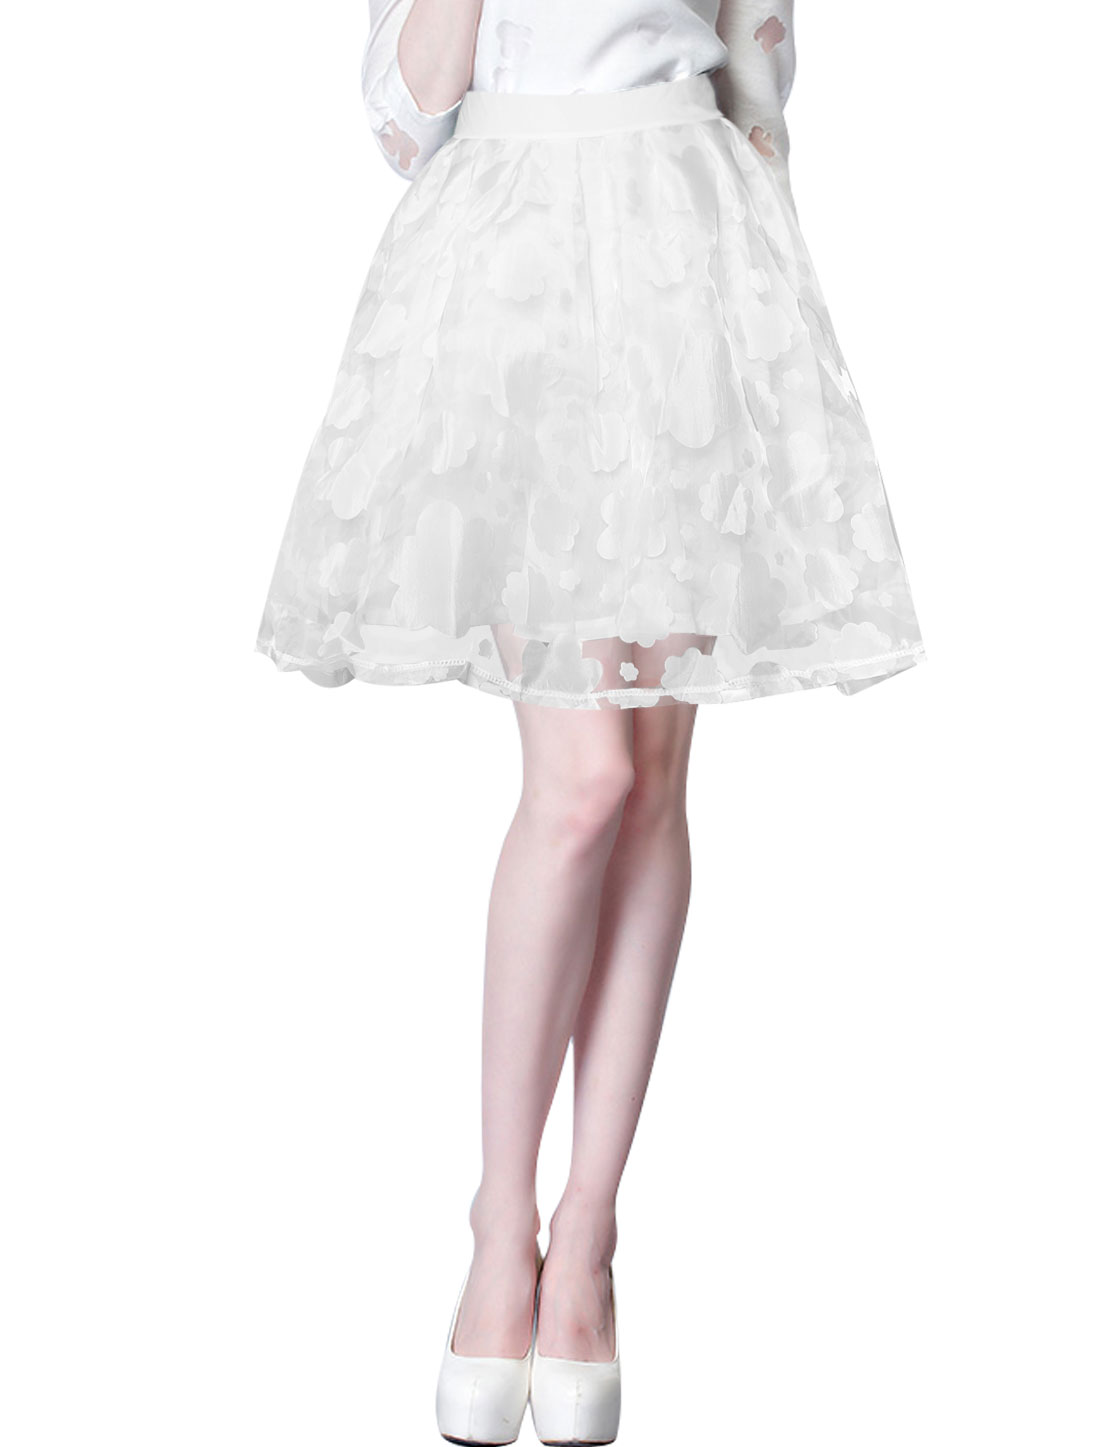 Woman Floral Design Elastic Waist Back Fully Lined Organza Skirt White S